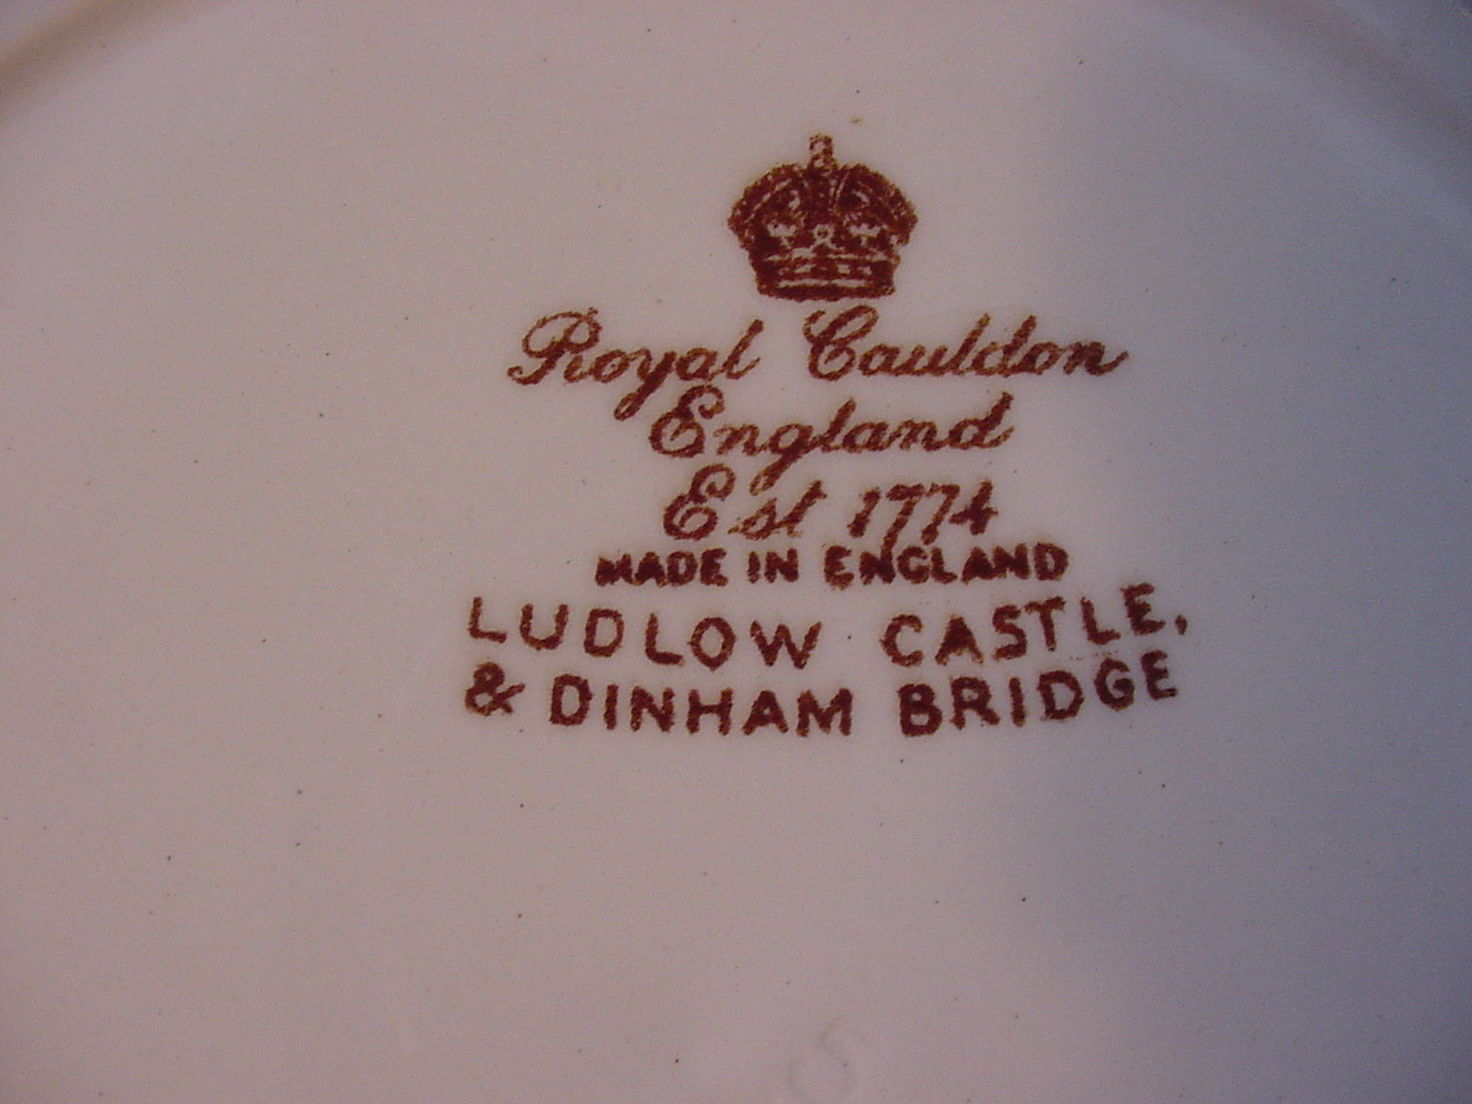 Royal Cauldron England Ludlow Castle Dinham Bridge Plate 9 3/4""